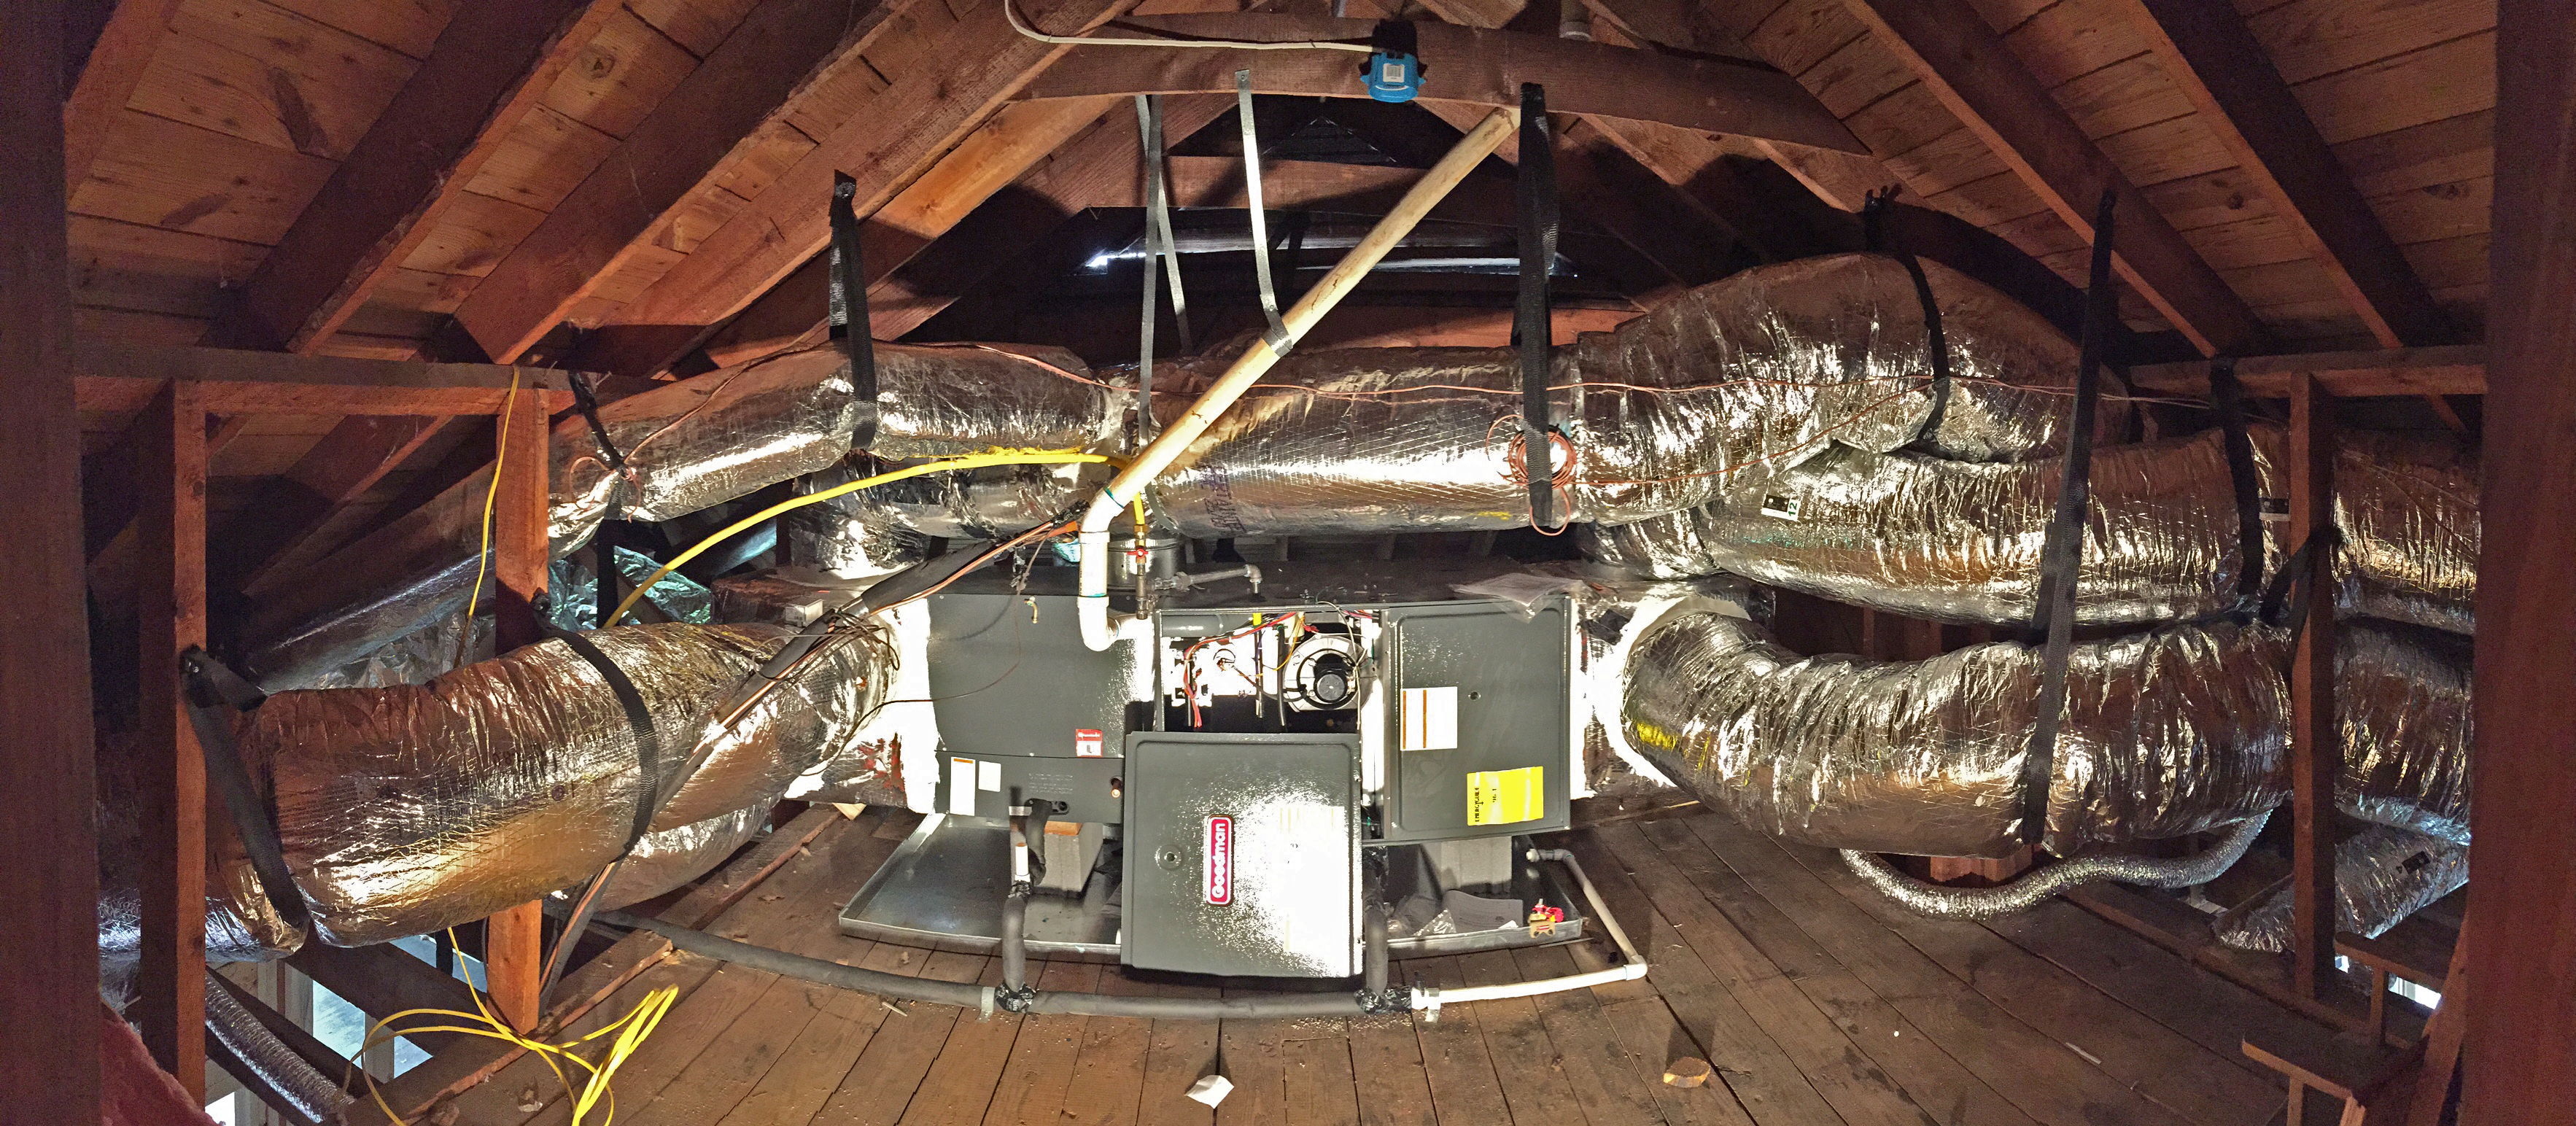 Hereu0027s a look at the heart of our HVAC system tucked away in the attic. & A Climate Controlled Nest | The Newton Nest